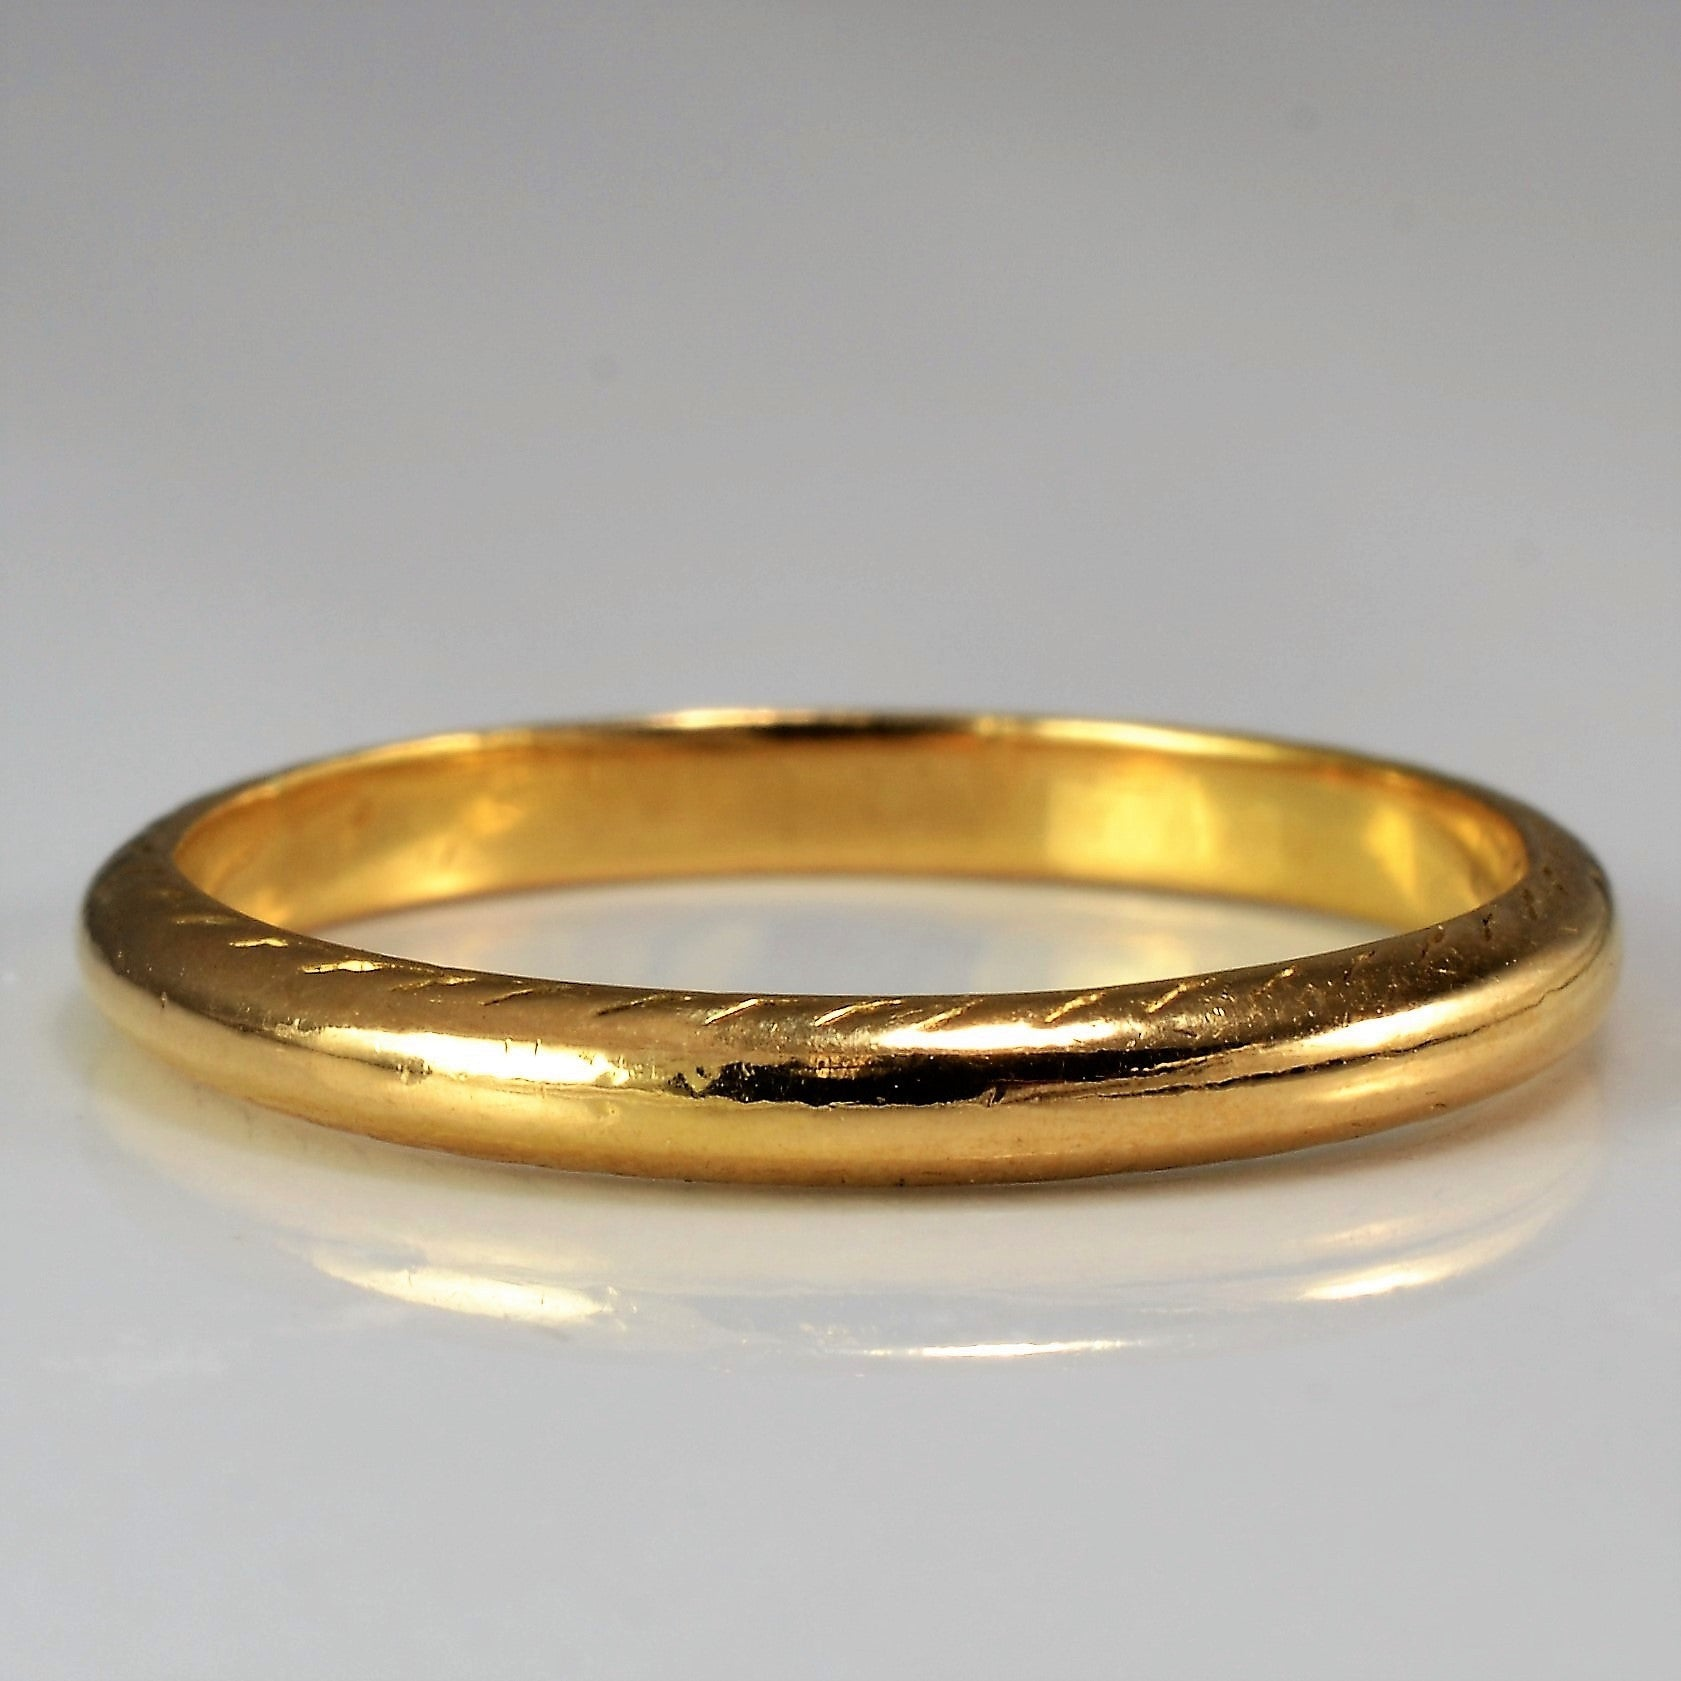 Victorian 22K Band With Detailed Edging Circa 1859 | SZ 6.75 |